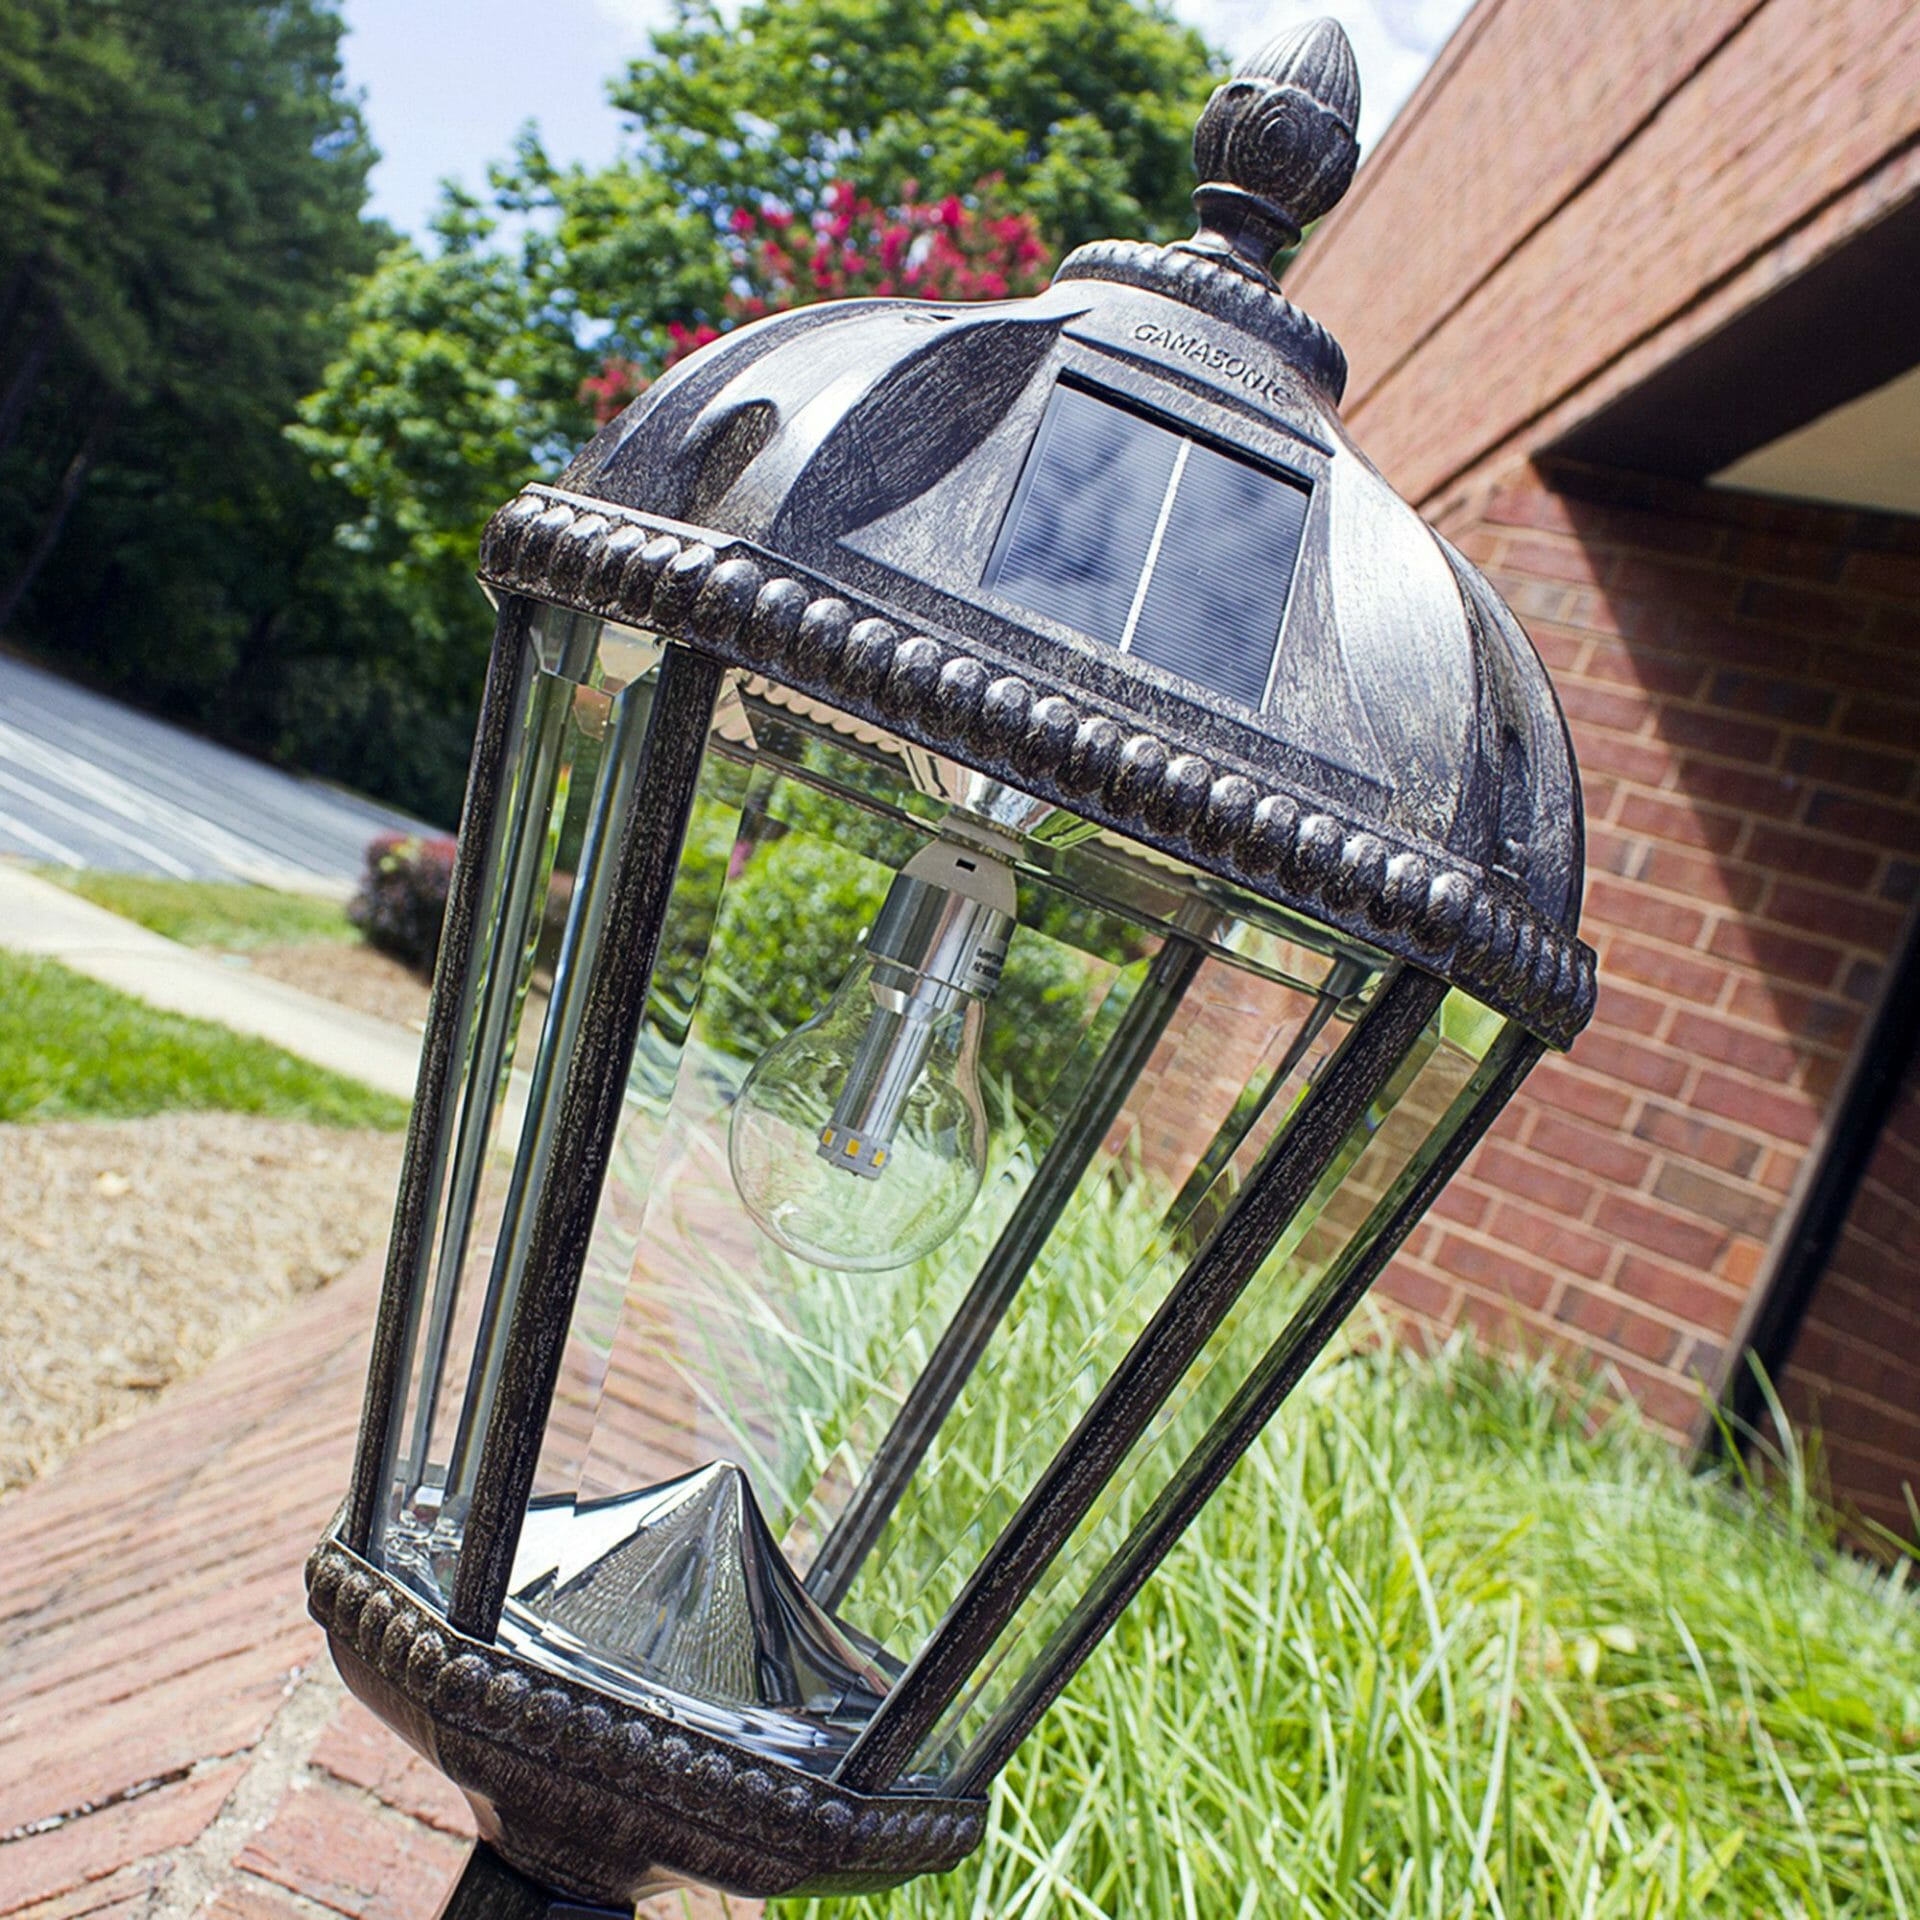 royal-bulb-pier-mount-solar-lamp-with-gs-solar-led-light-bulb-weathered-bronze-98b311